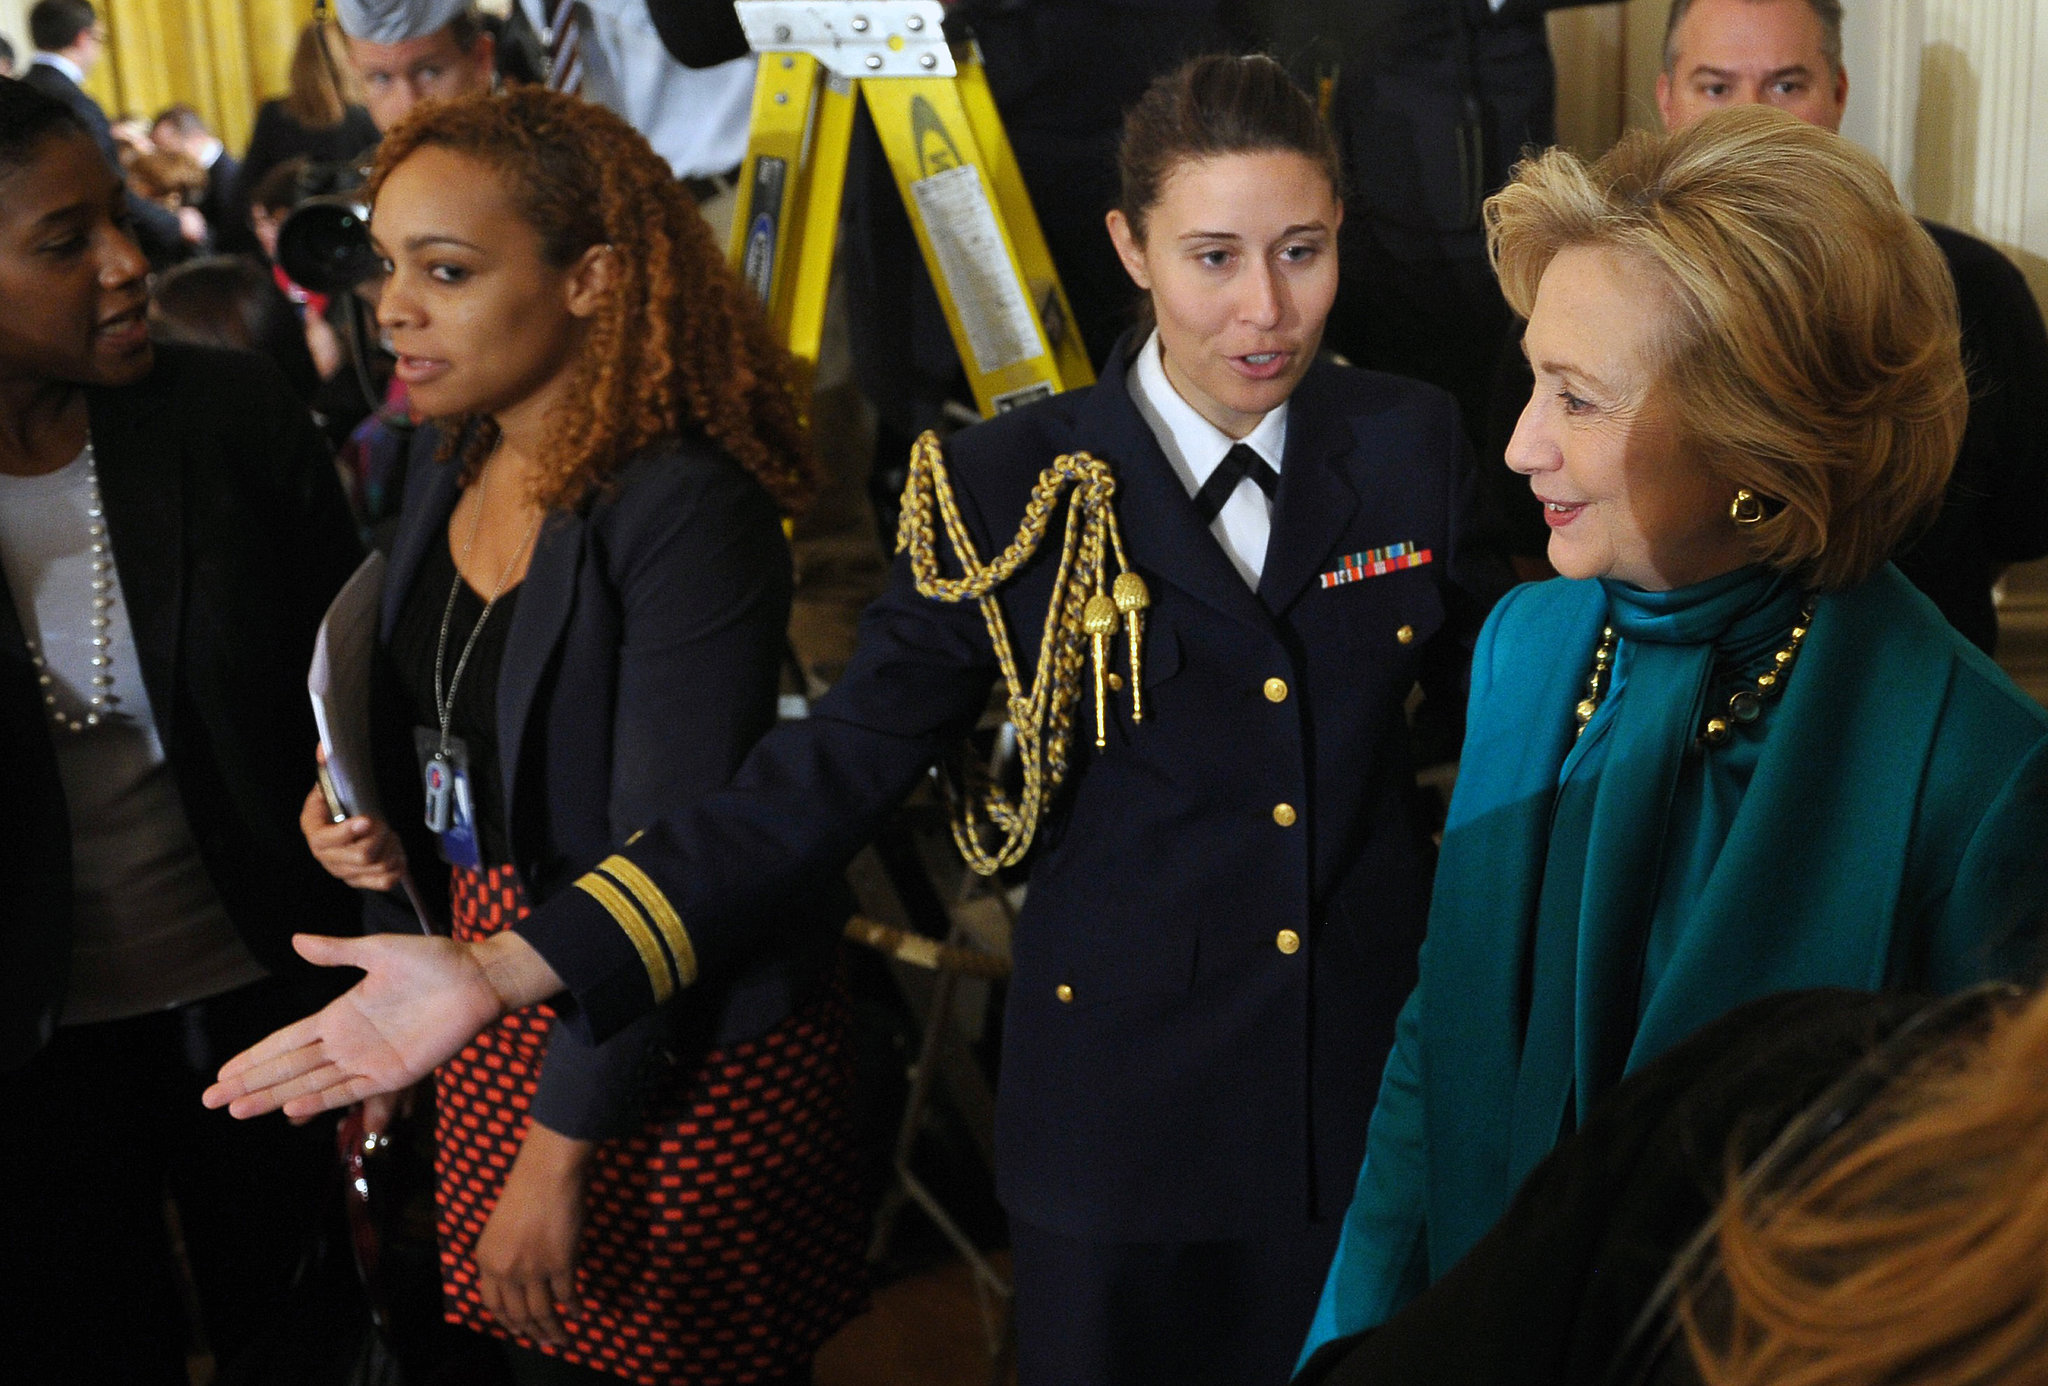 Hillary Clinton was on hand to celebrate her husband Bill Clinton's achievement.